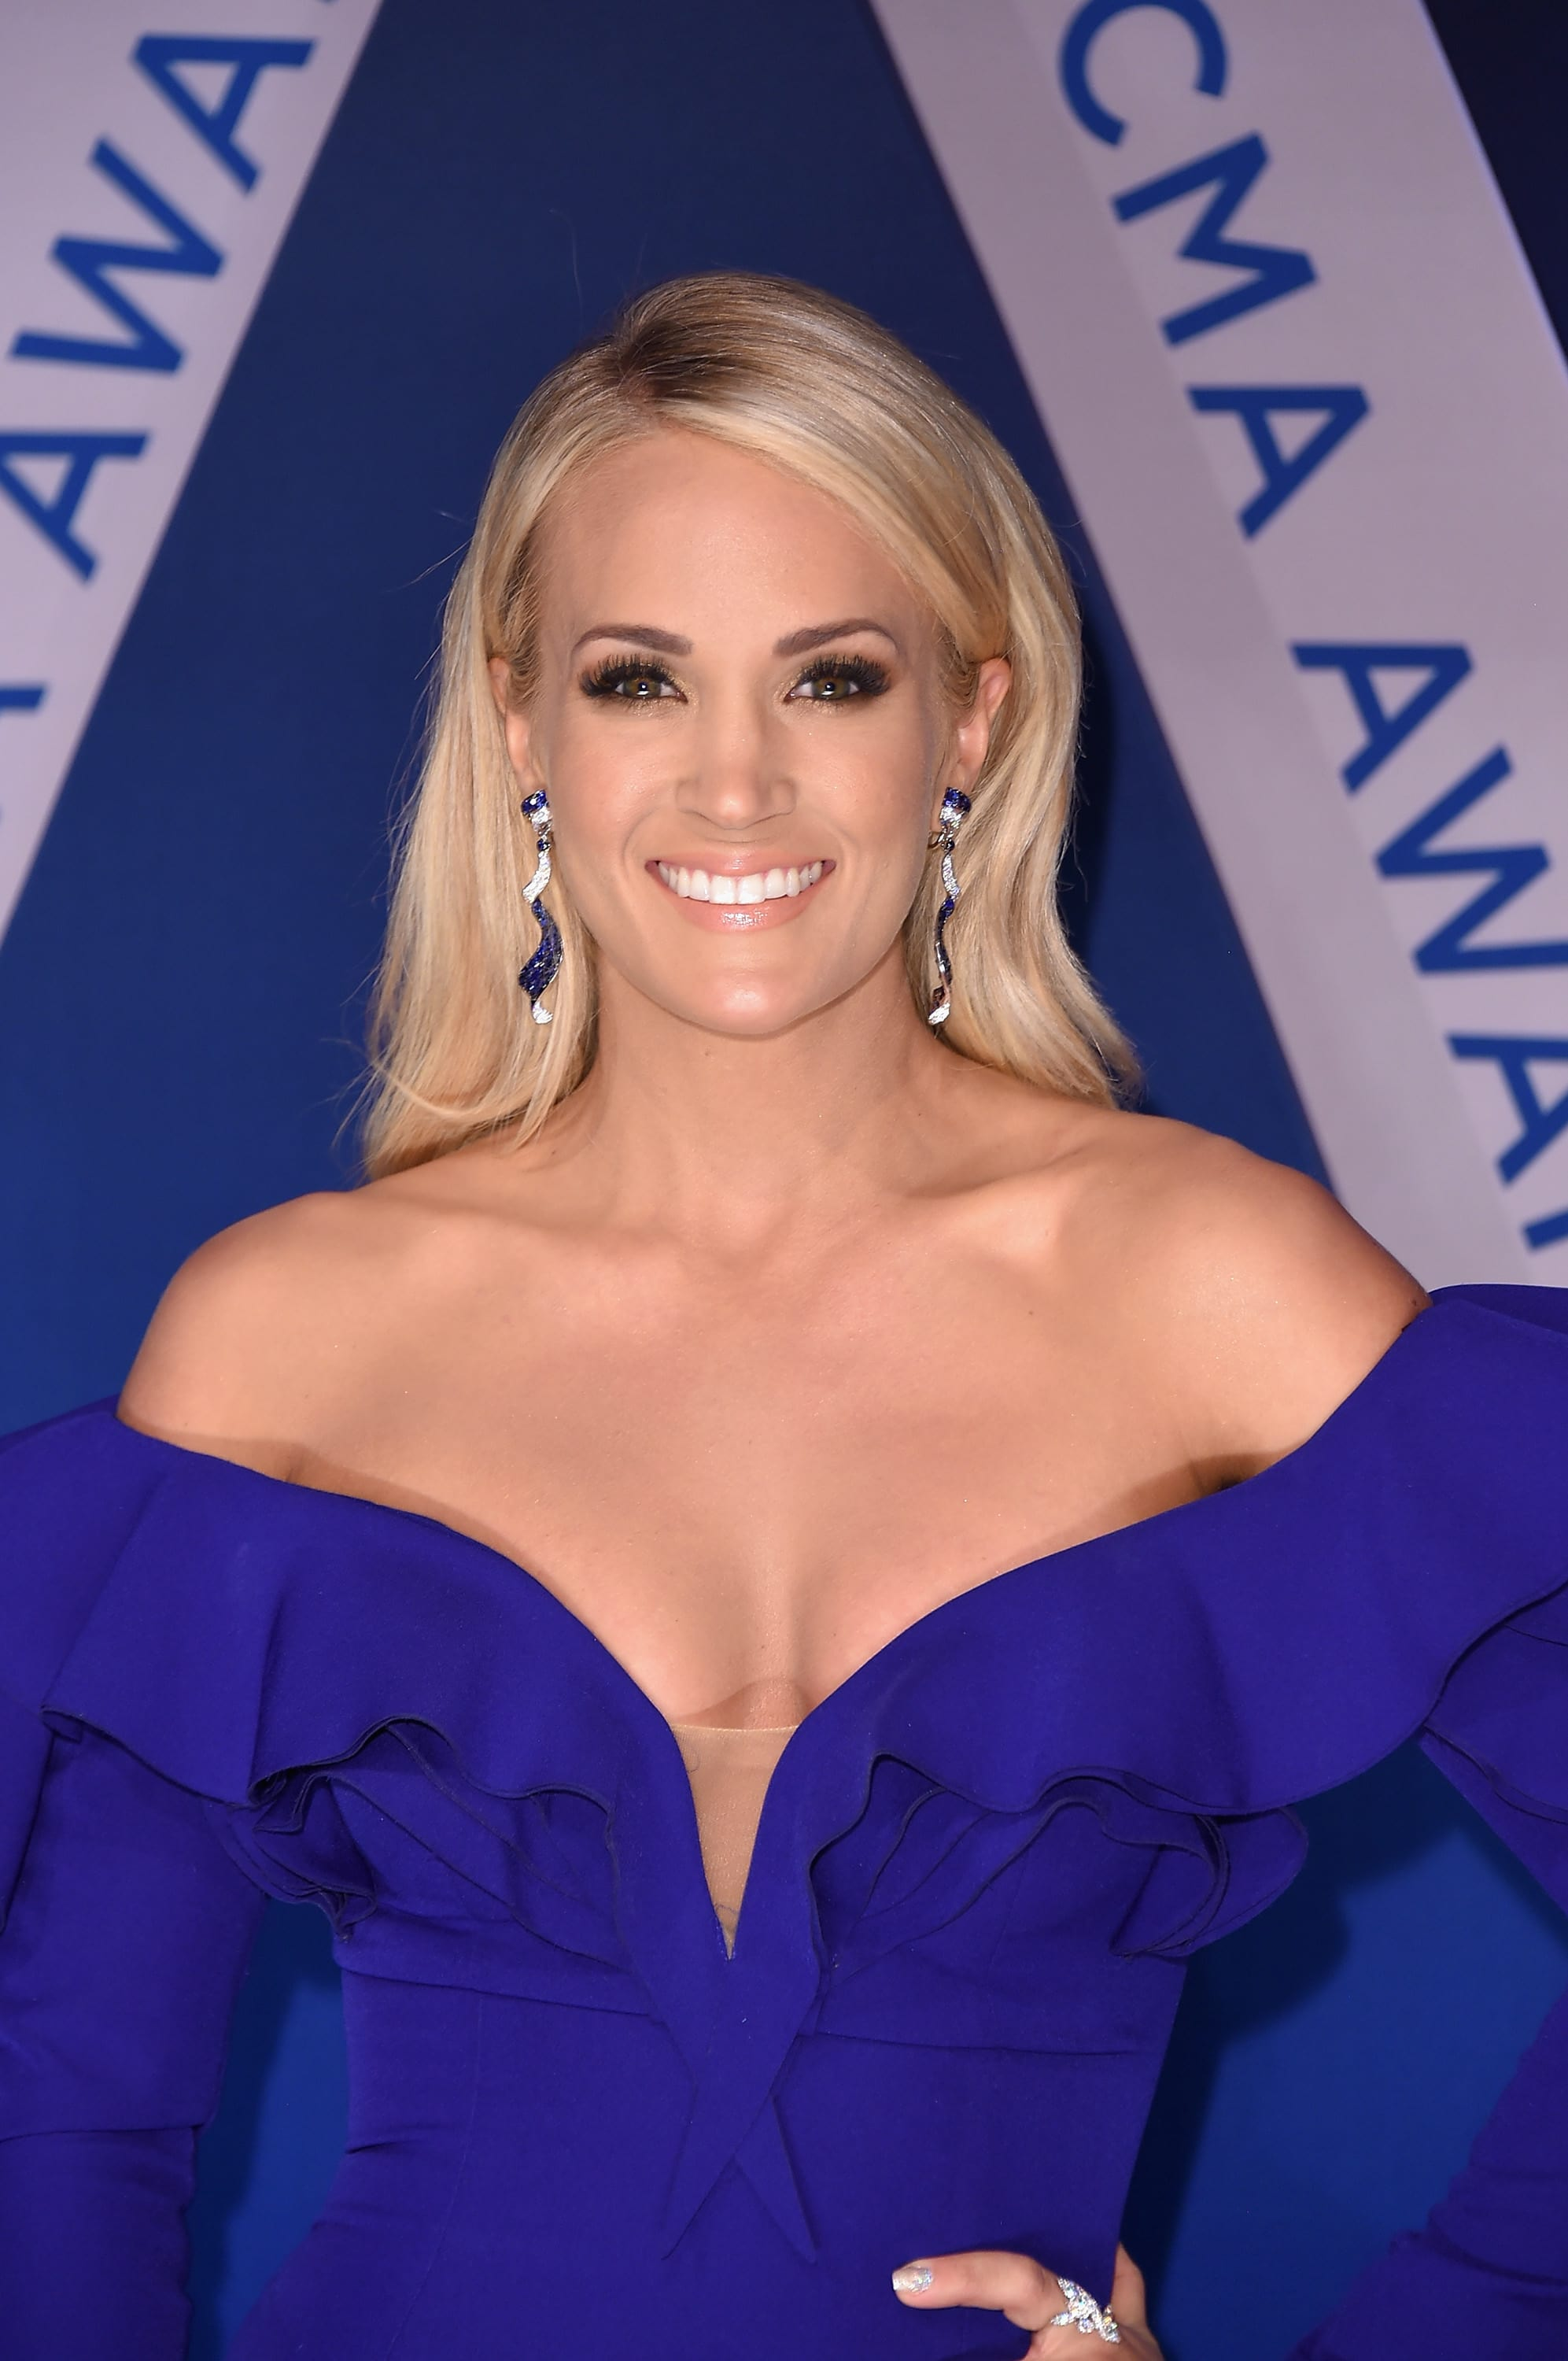 Carrie Underwood 35 Is Too Late To Have More Kids The